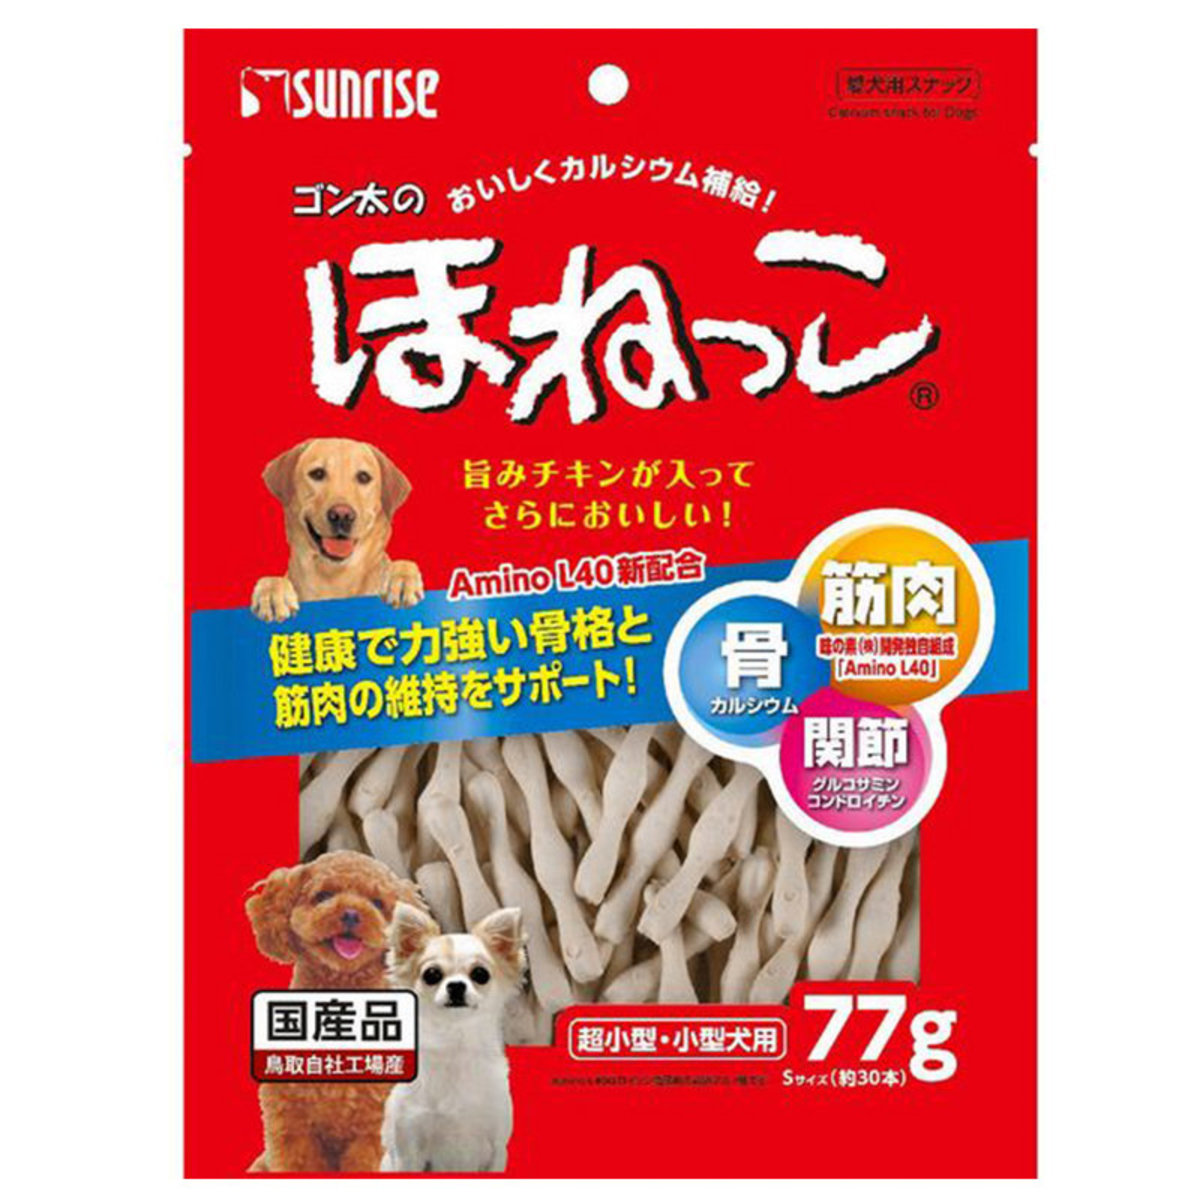 SSB-012 Calcium snack for Dogs S 230g